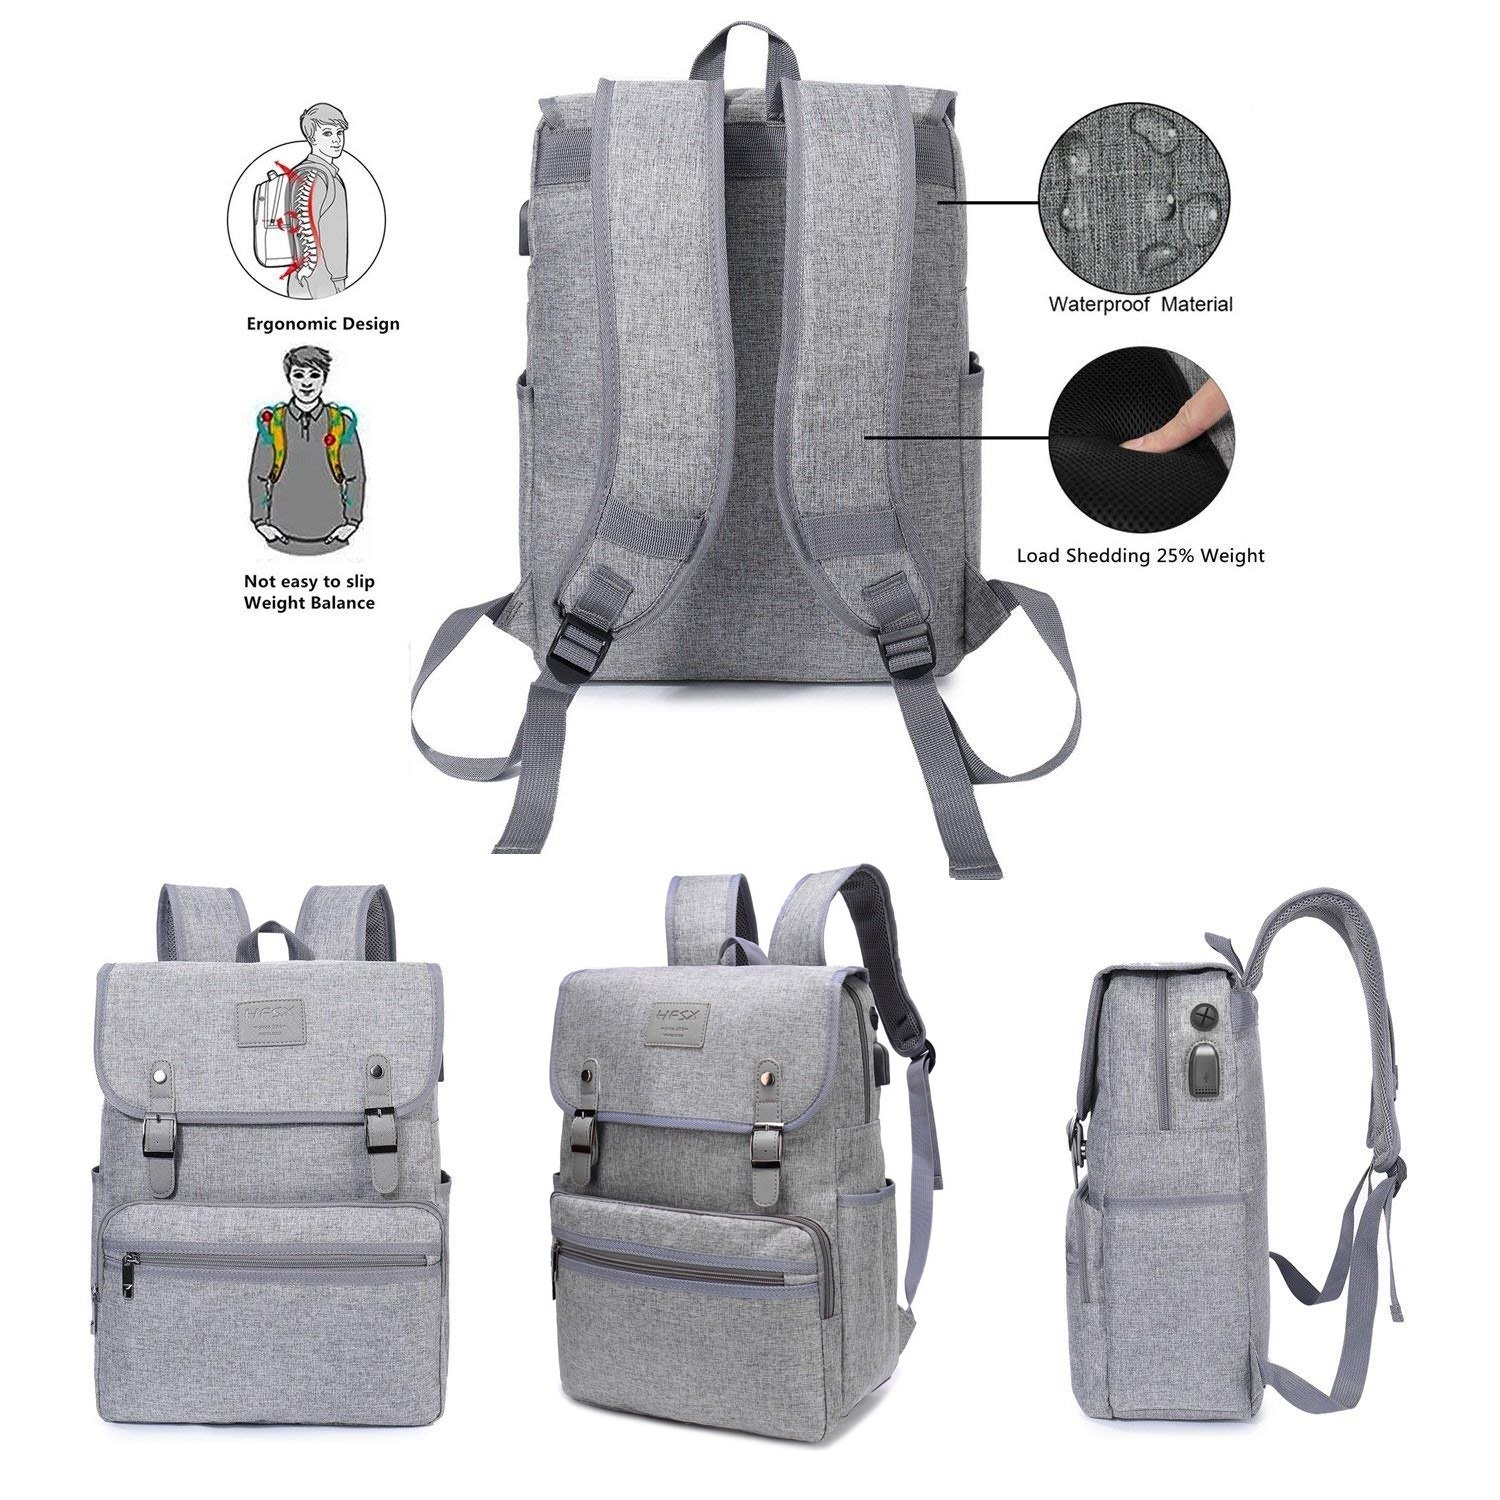 Laptop Backpack Men Women Business Travel Computer Backpack School College Bookbag Stylish Water Resistant Vintage Backpack with USB Port Fashion GREY Fits 15.6 Inch Laptop and Notebook by HFSX (Image #4)